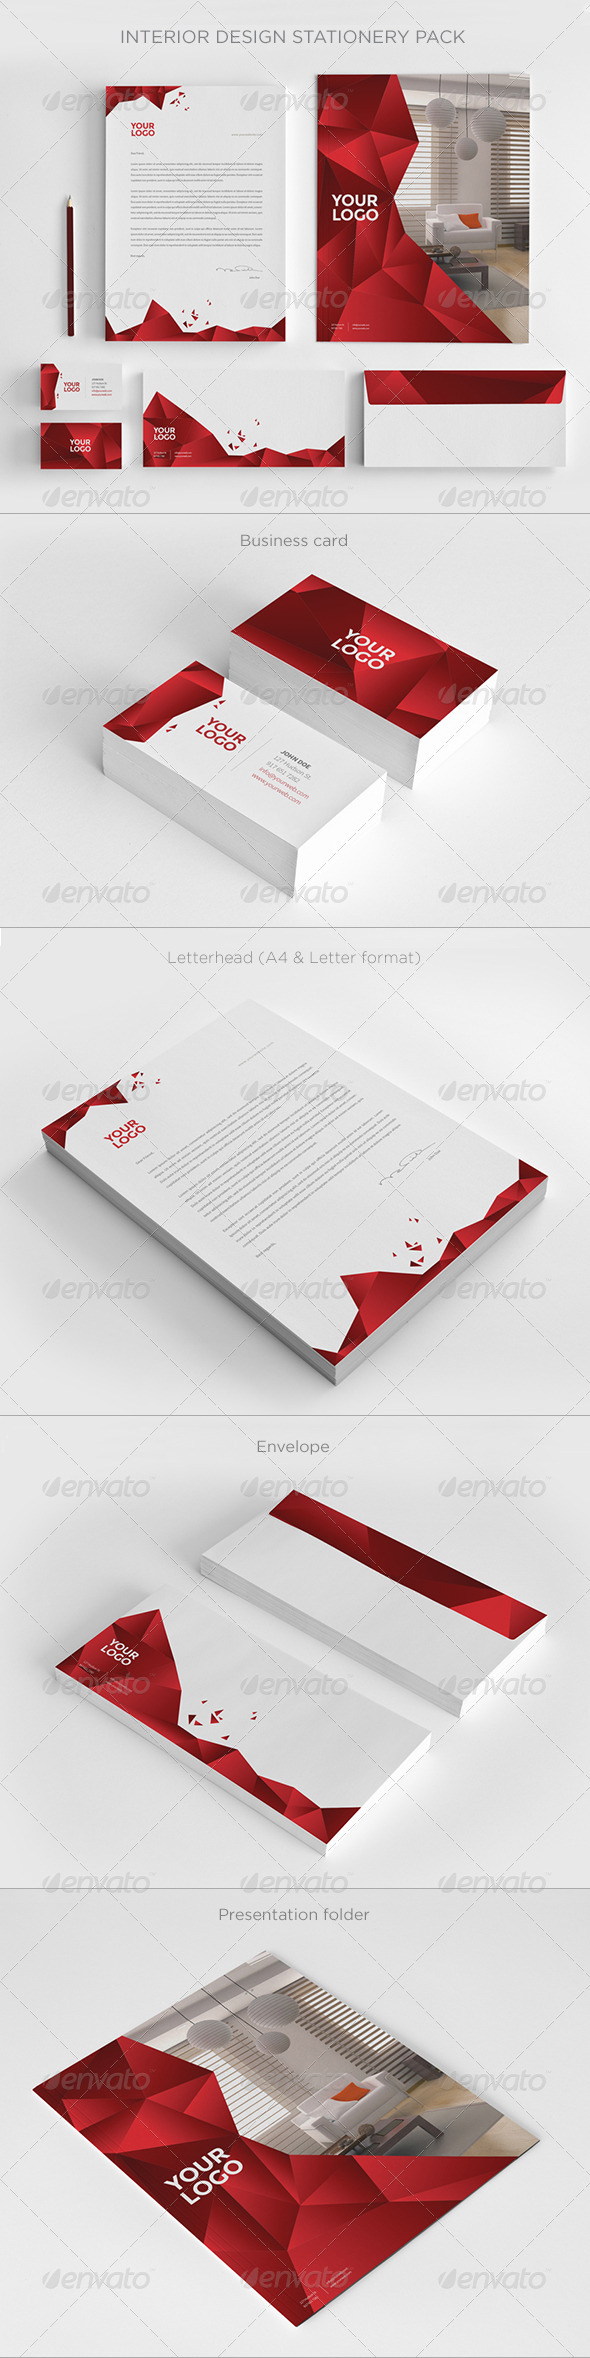 Interior Design Stationery - Stationery Print Templates